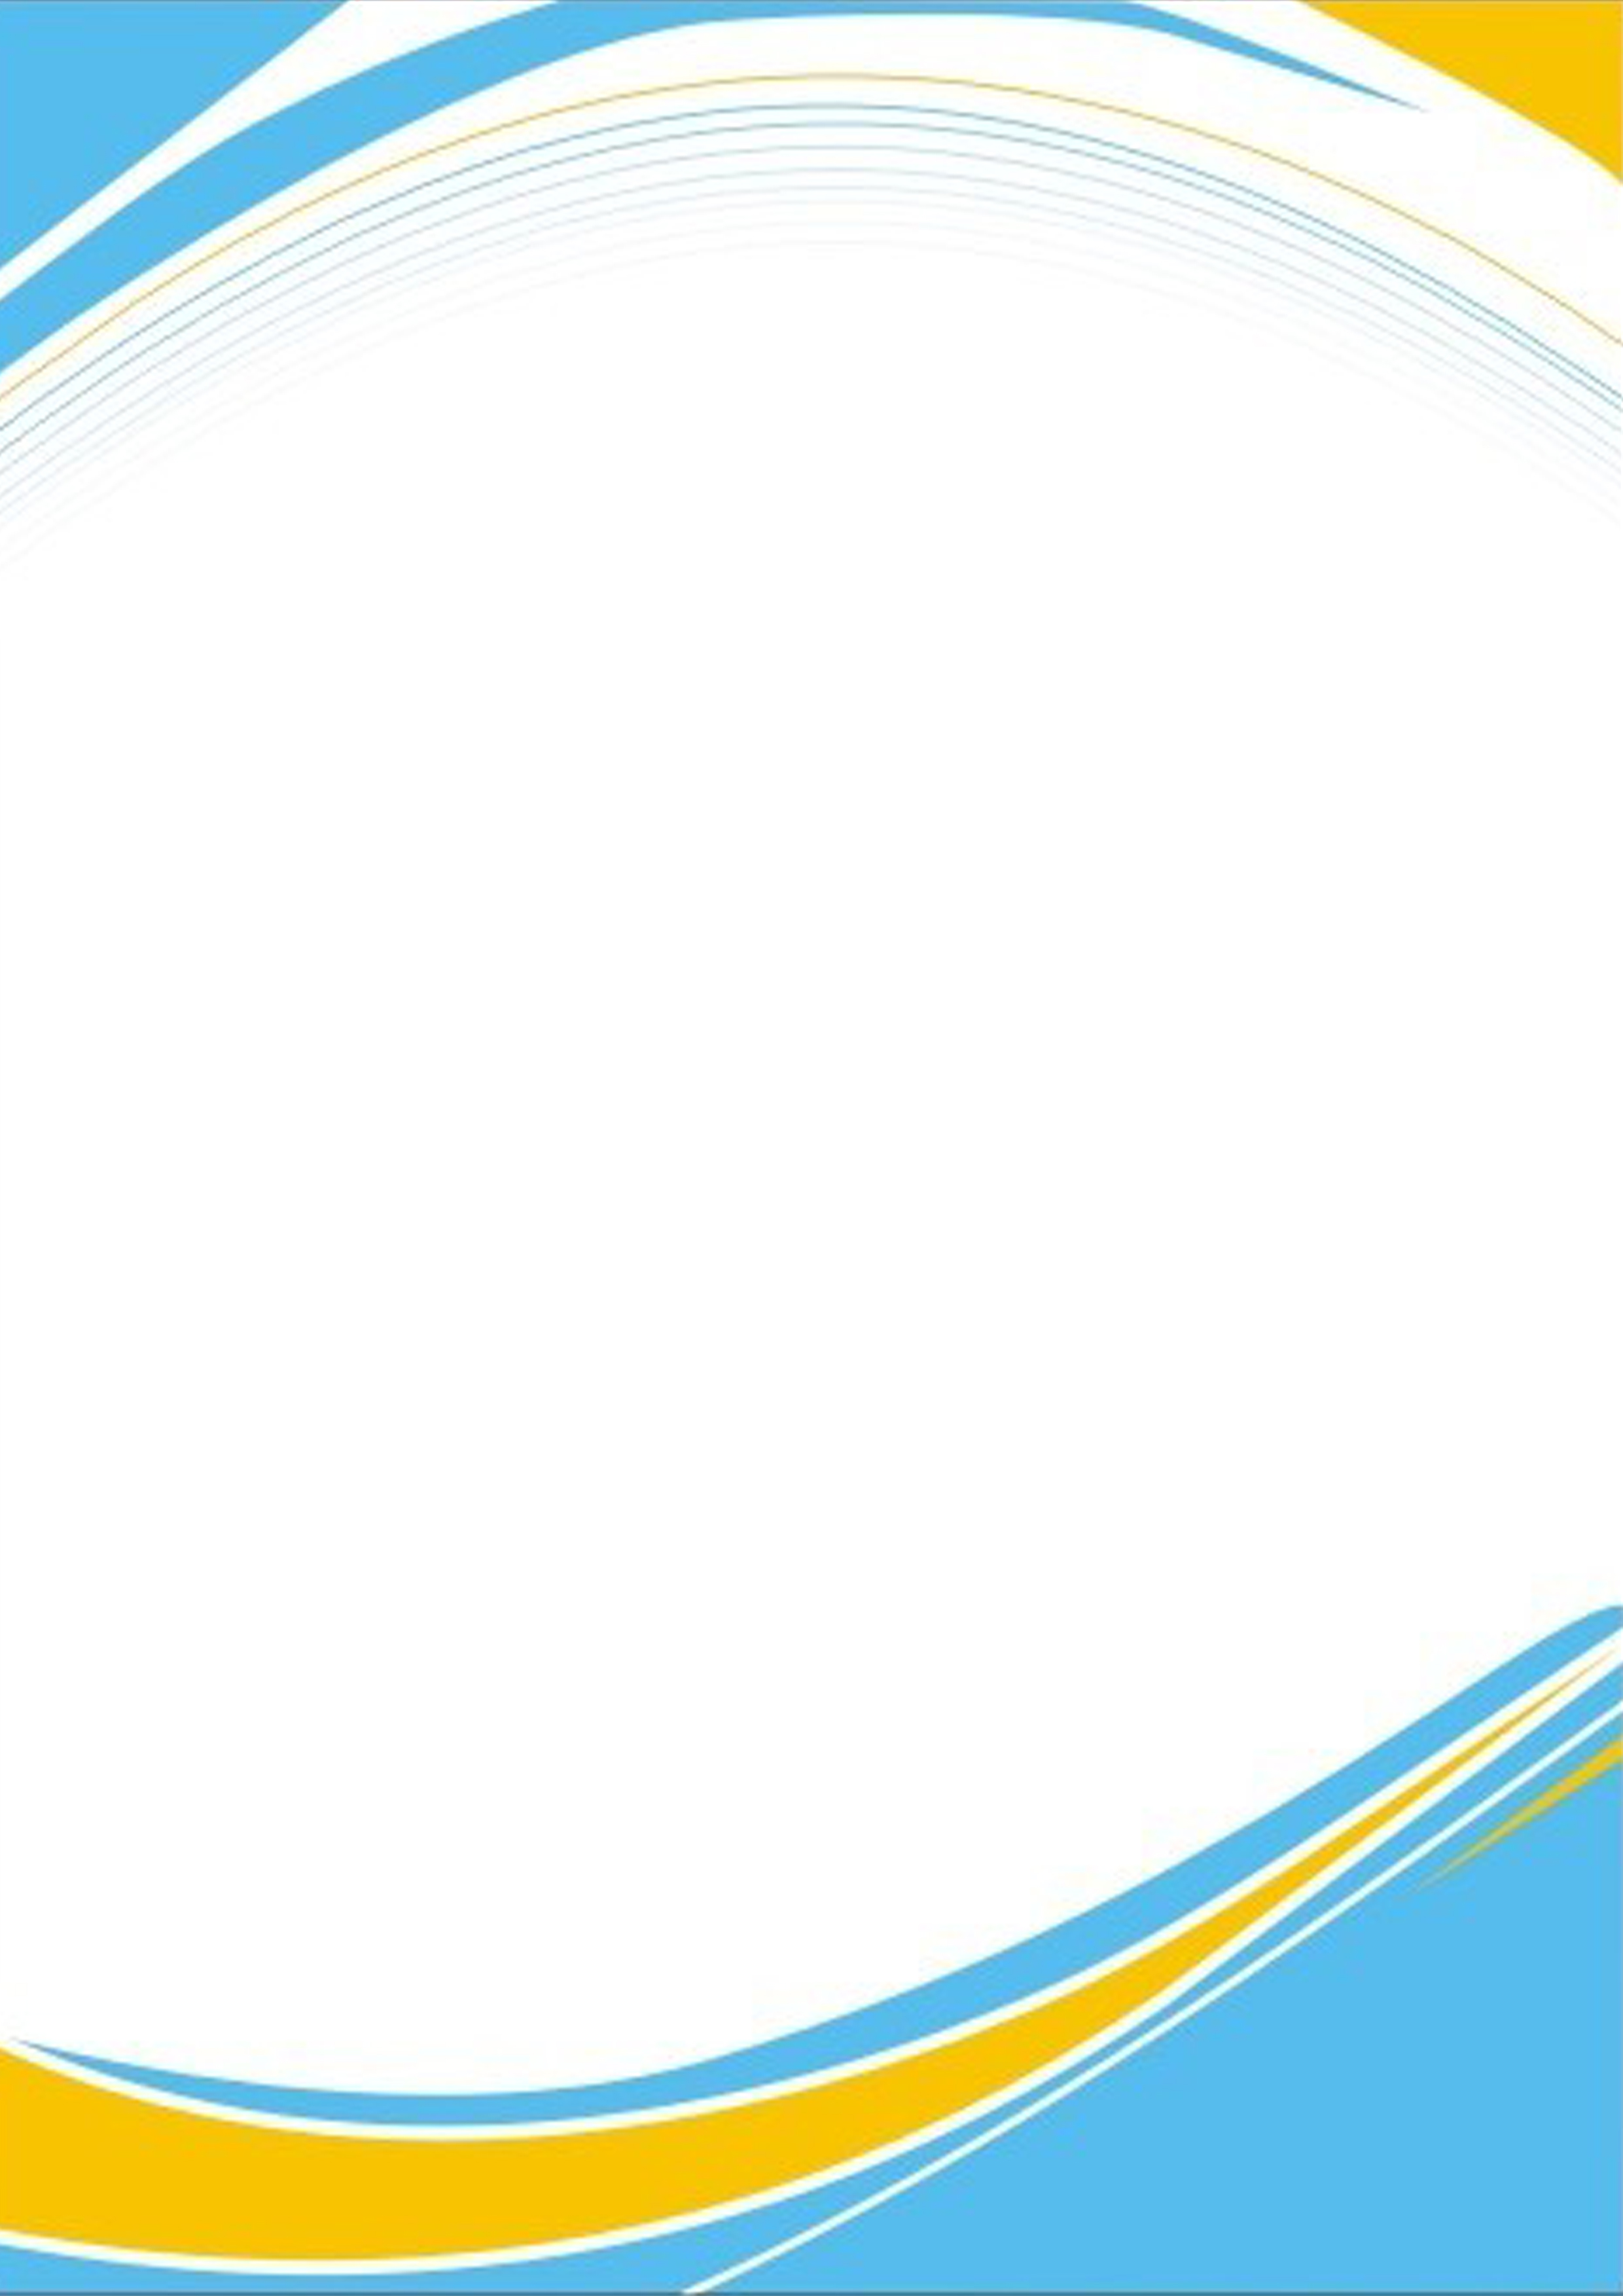 ppt background  blue  yellow  white background image for free download